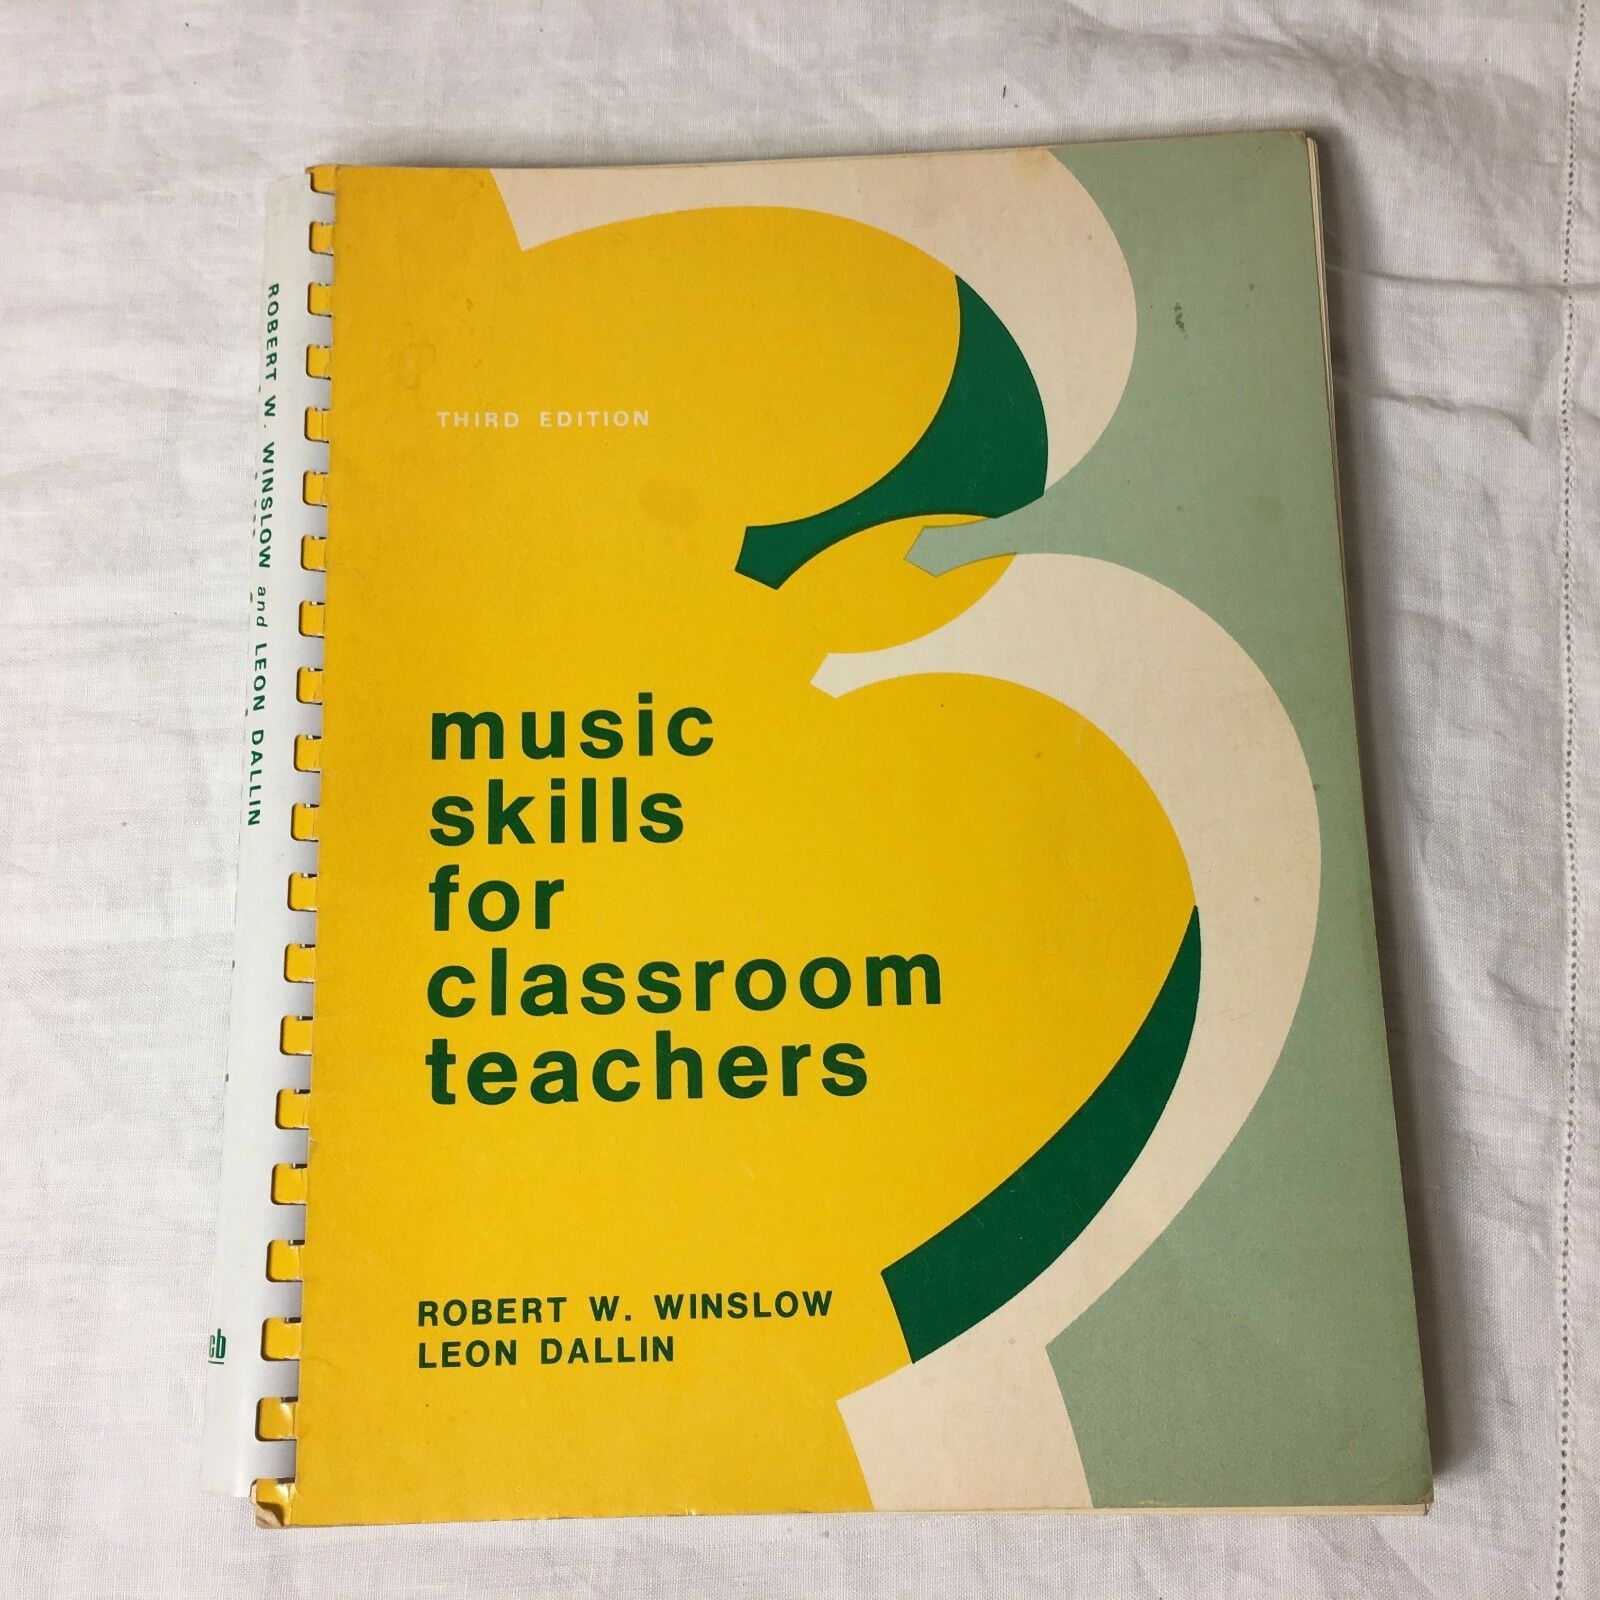 Music Skills for Classroom Teachers By Robert Winslow, Leon Dallin, 3rd Ed. 1972